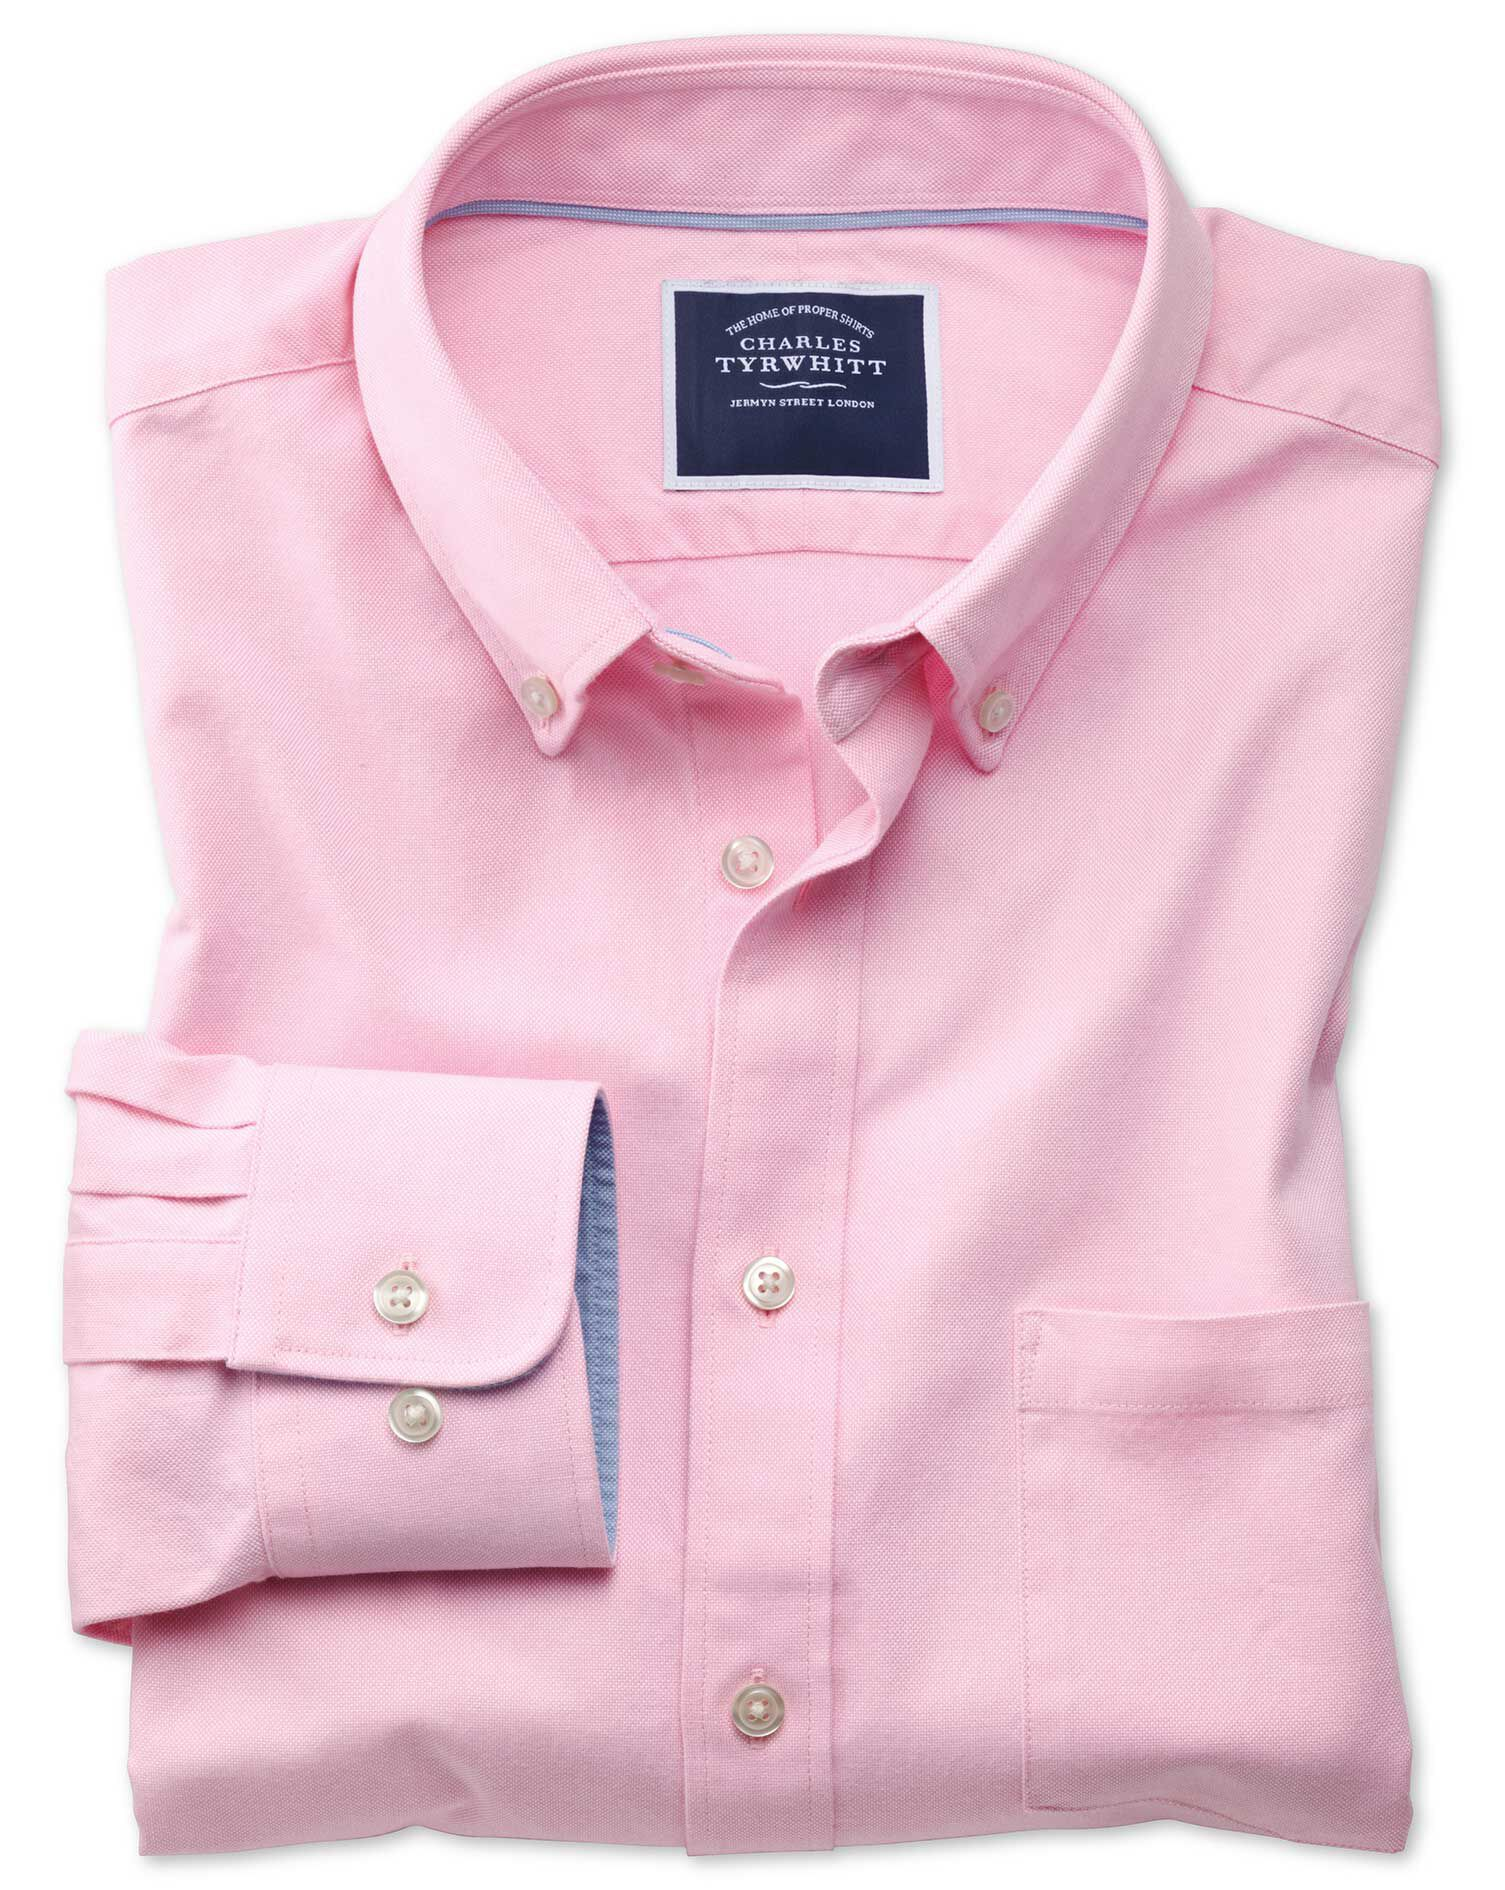 Slim Fit Button-Down Washed Oxford Plain Light Pink Cotton Shirt Single Cuff Size XS by Charles Tyrw